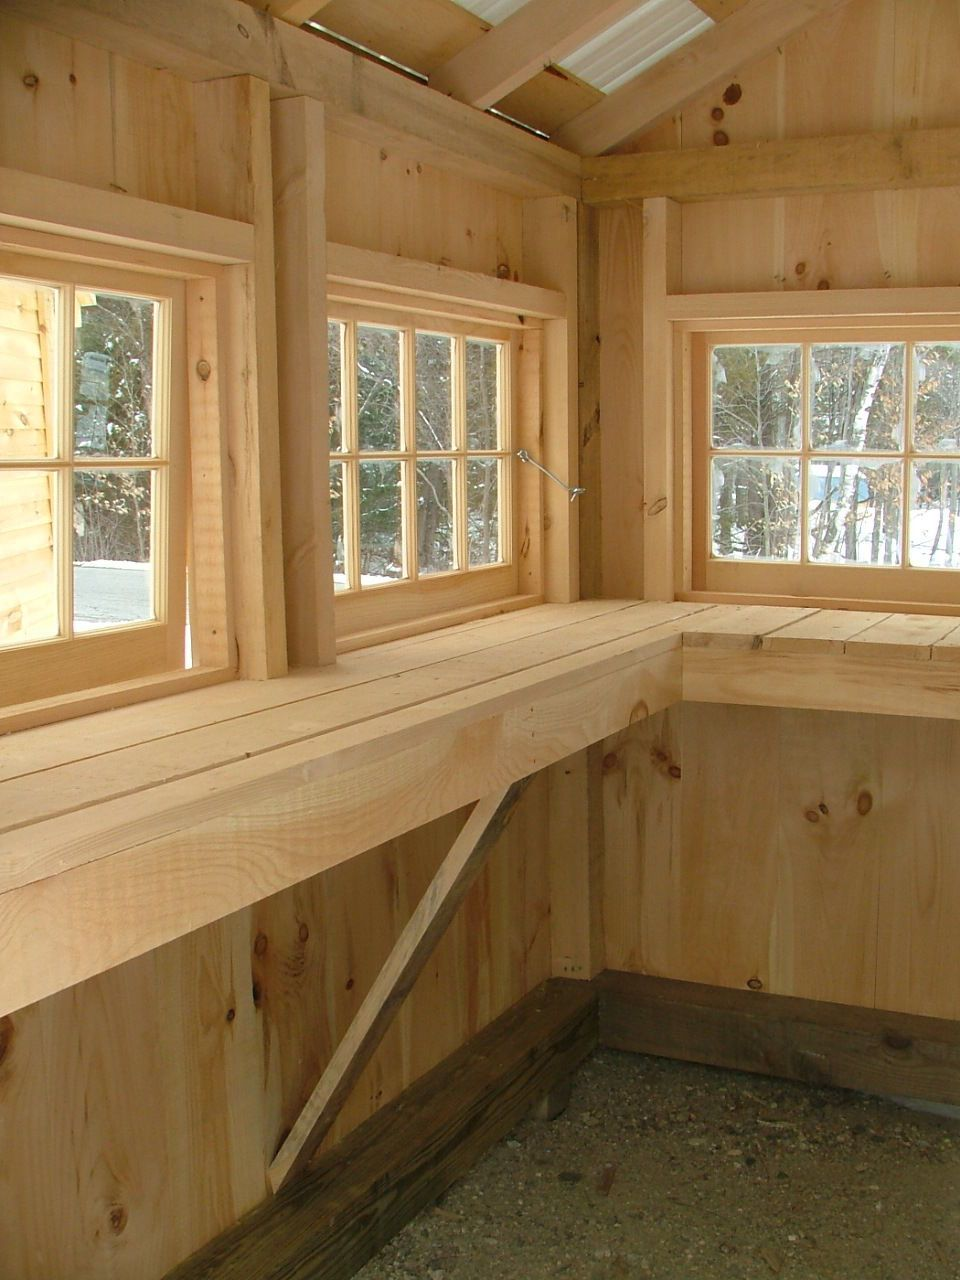 garden shed interior counter work space hinged windows dirt floor